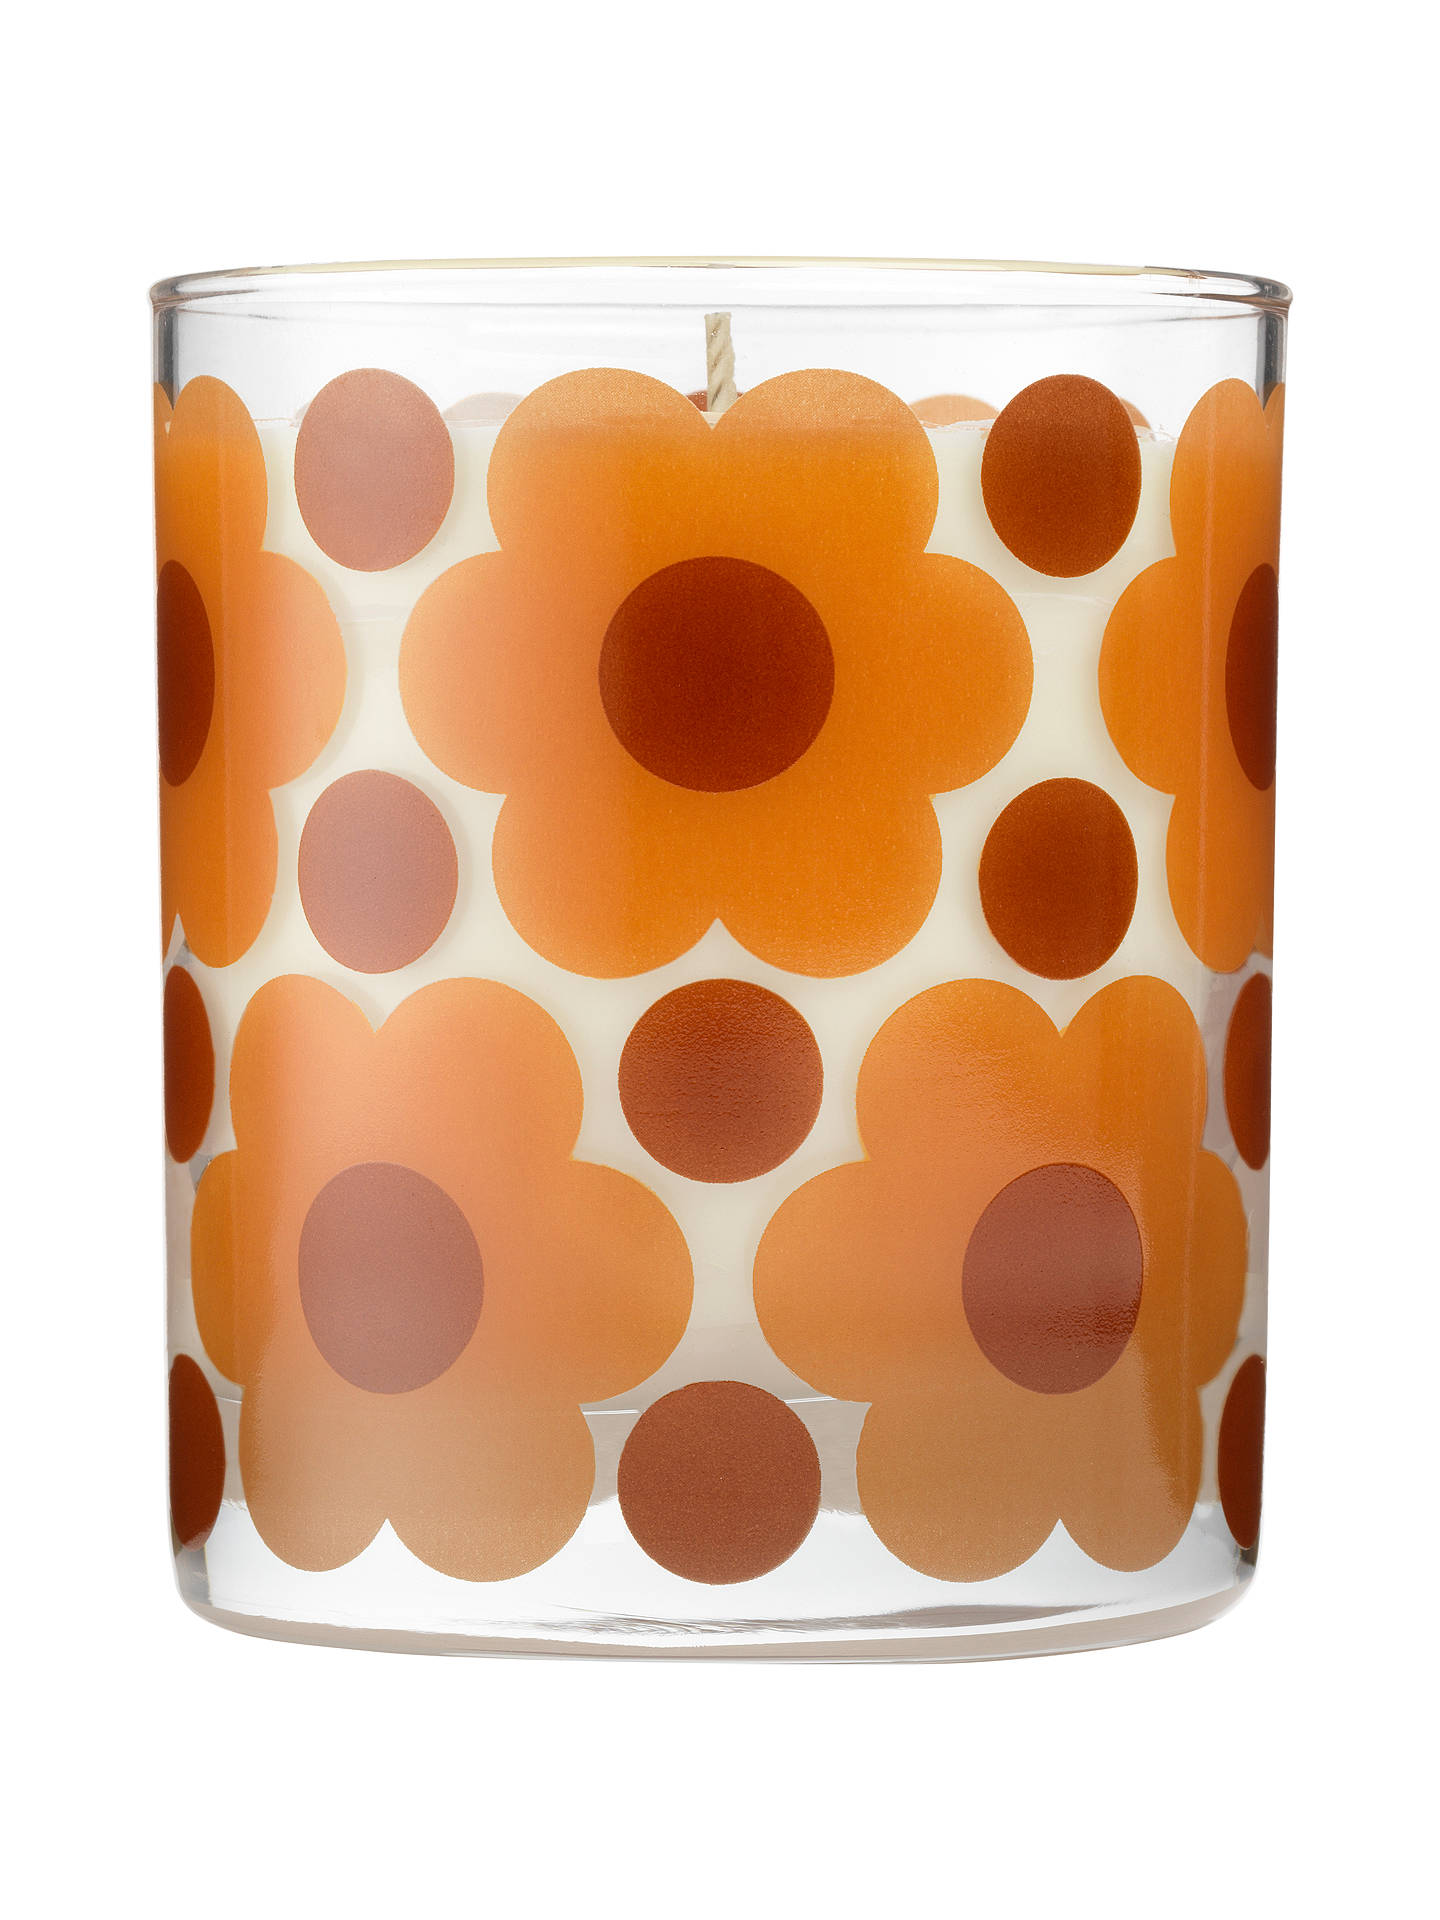 Buy Orla Kiely Orange Rind Scented Candle, 200g Online at johnlewis.com